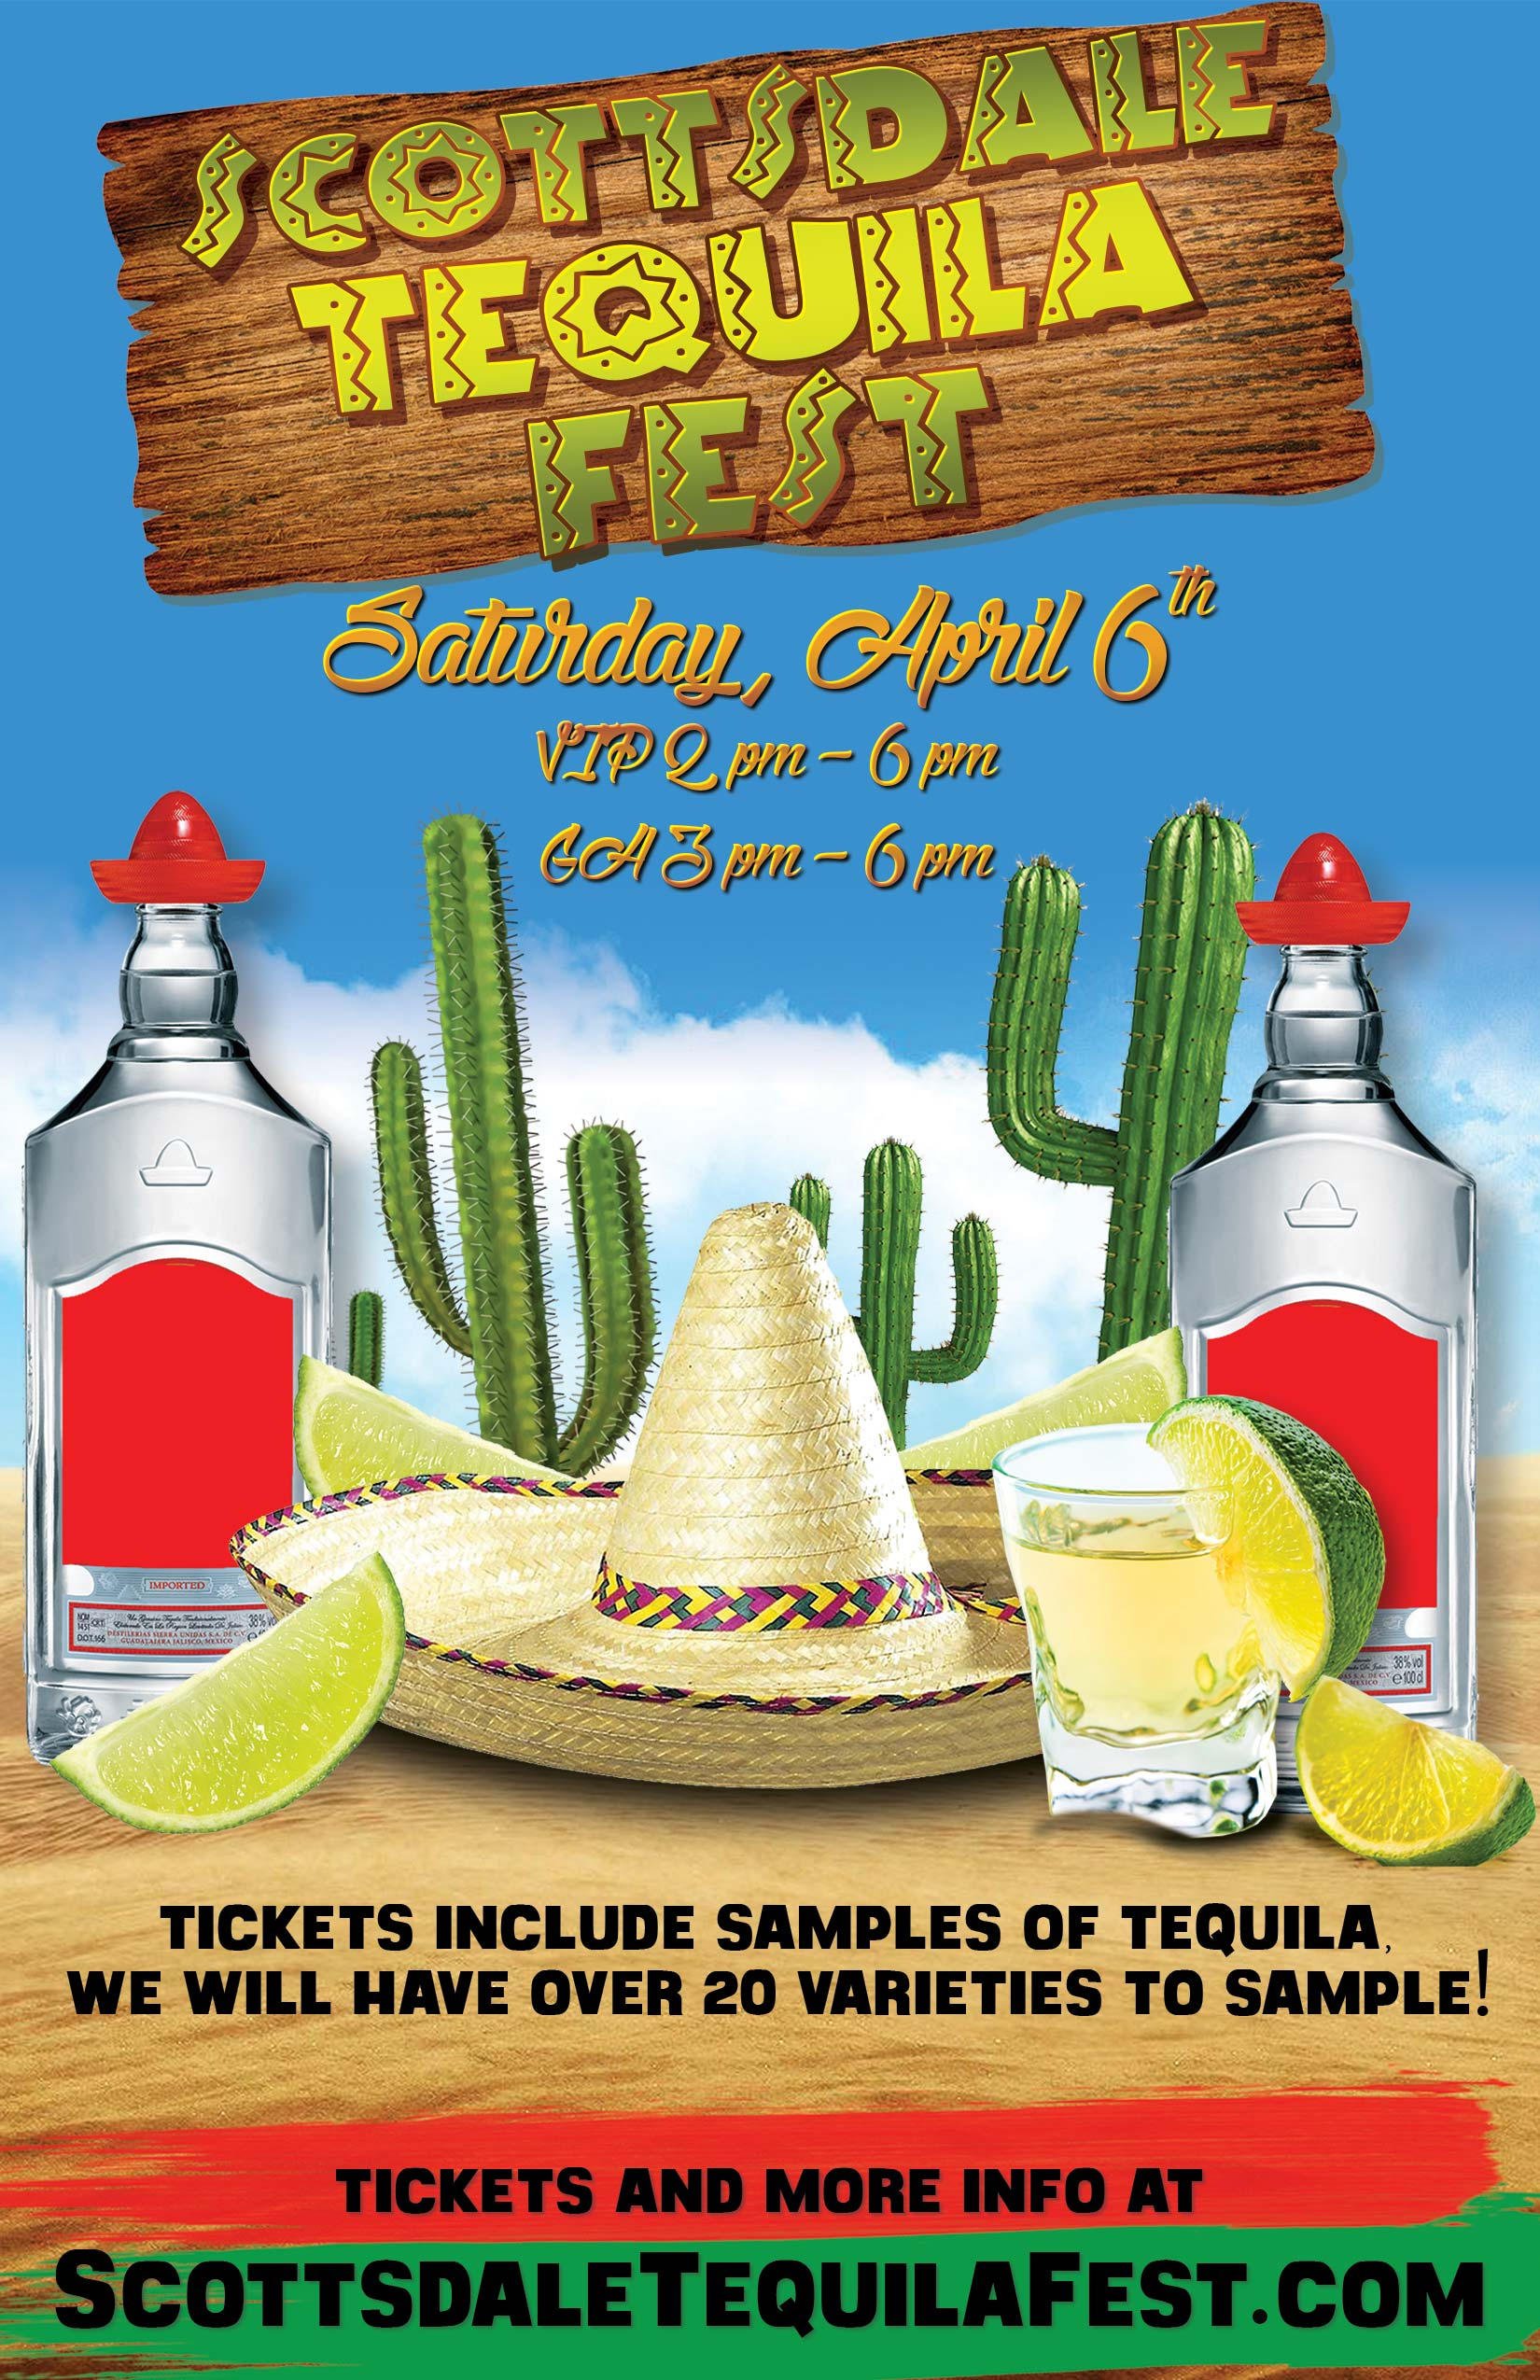 Scottsdale Tequila Fest Tasting Party - Taste a variety of different types of tequila! We will have over 20 varieties to choose from!